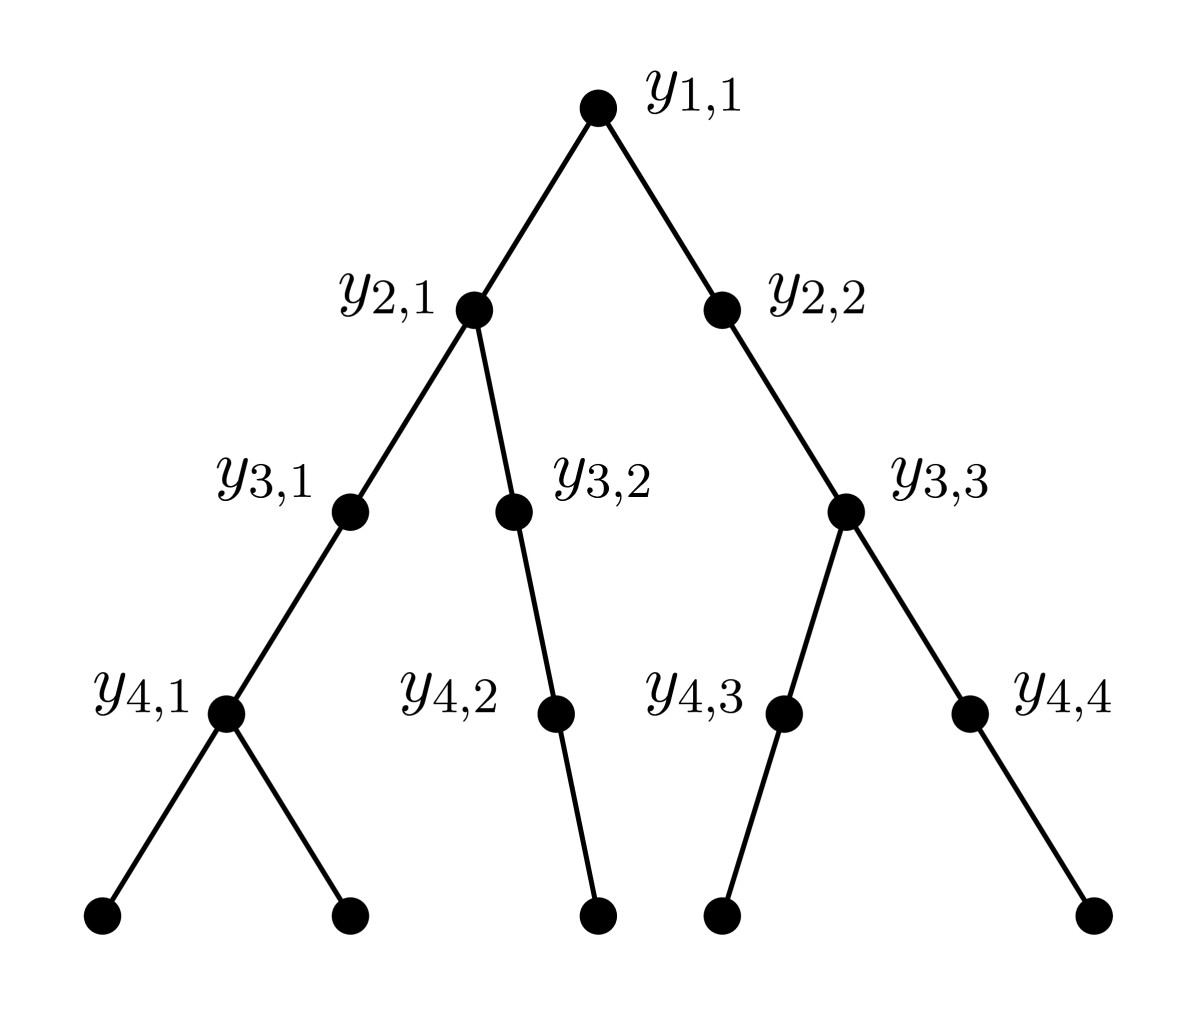 http://static-content.springer.com/image/art%3A10.1186%2F1748-7188-7-7/MediaObjects/13015_2011_Article_179_Fig2_HTML.jpg